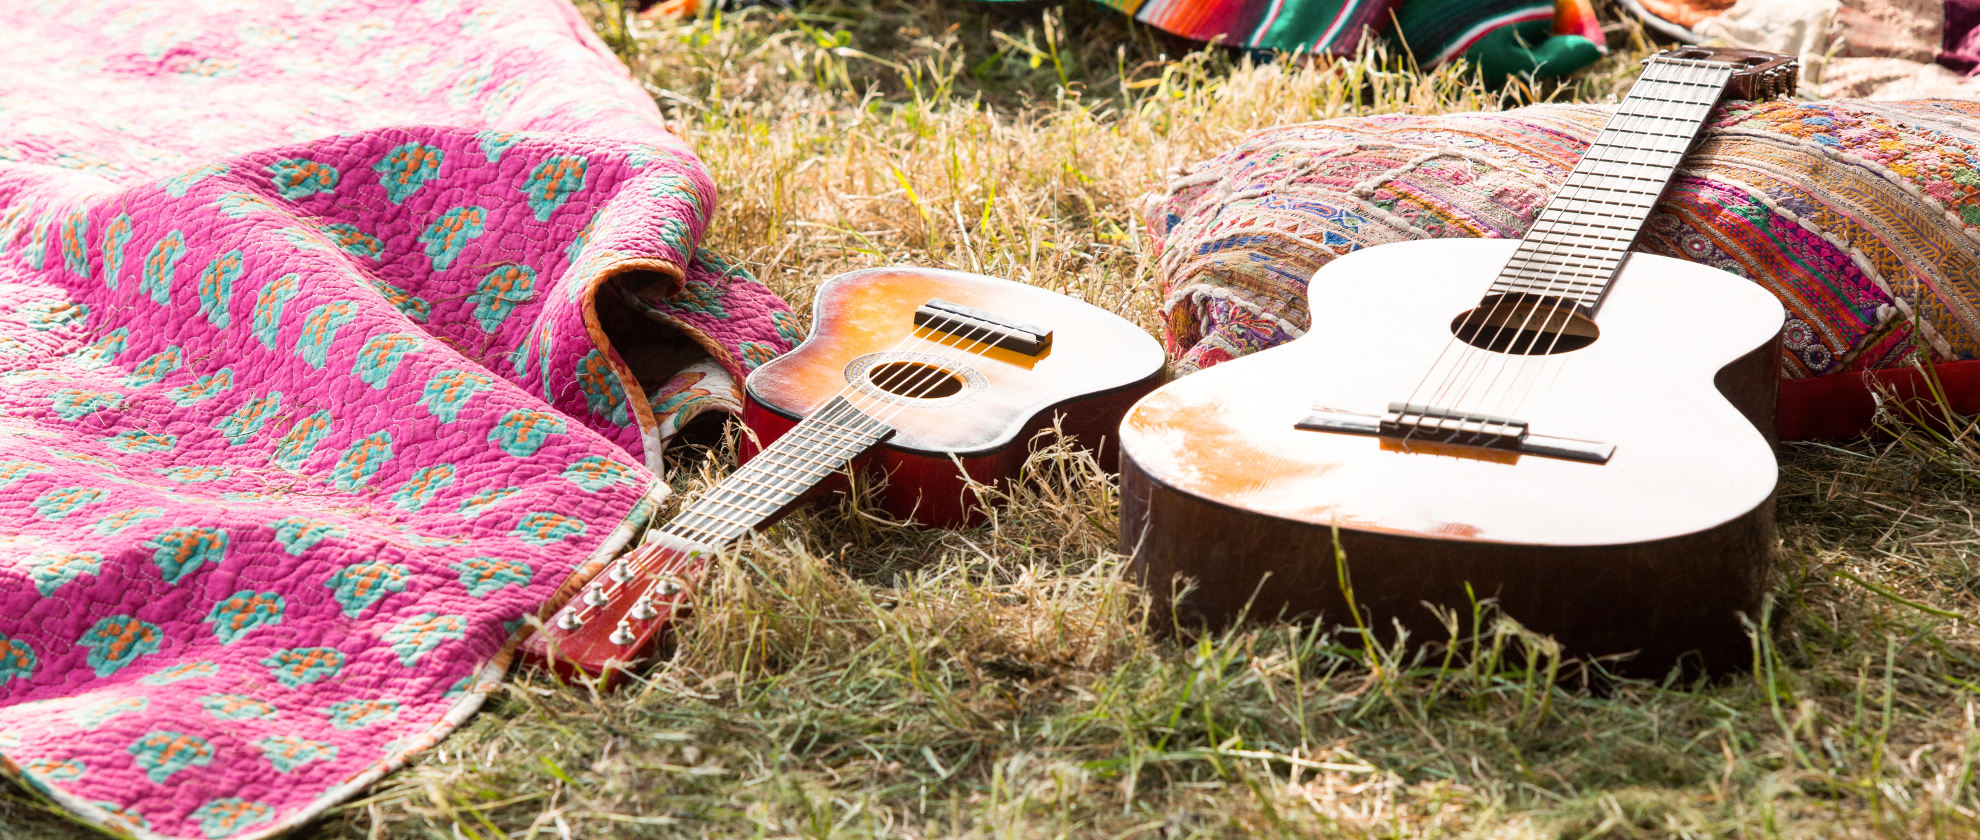 5 of the Best Small British Festivals You Need to Go to This Summer